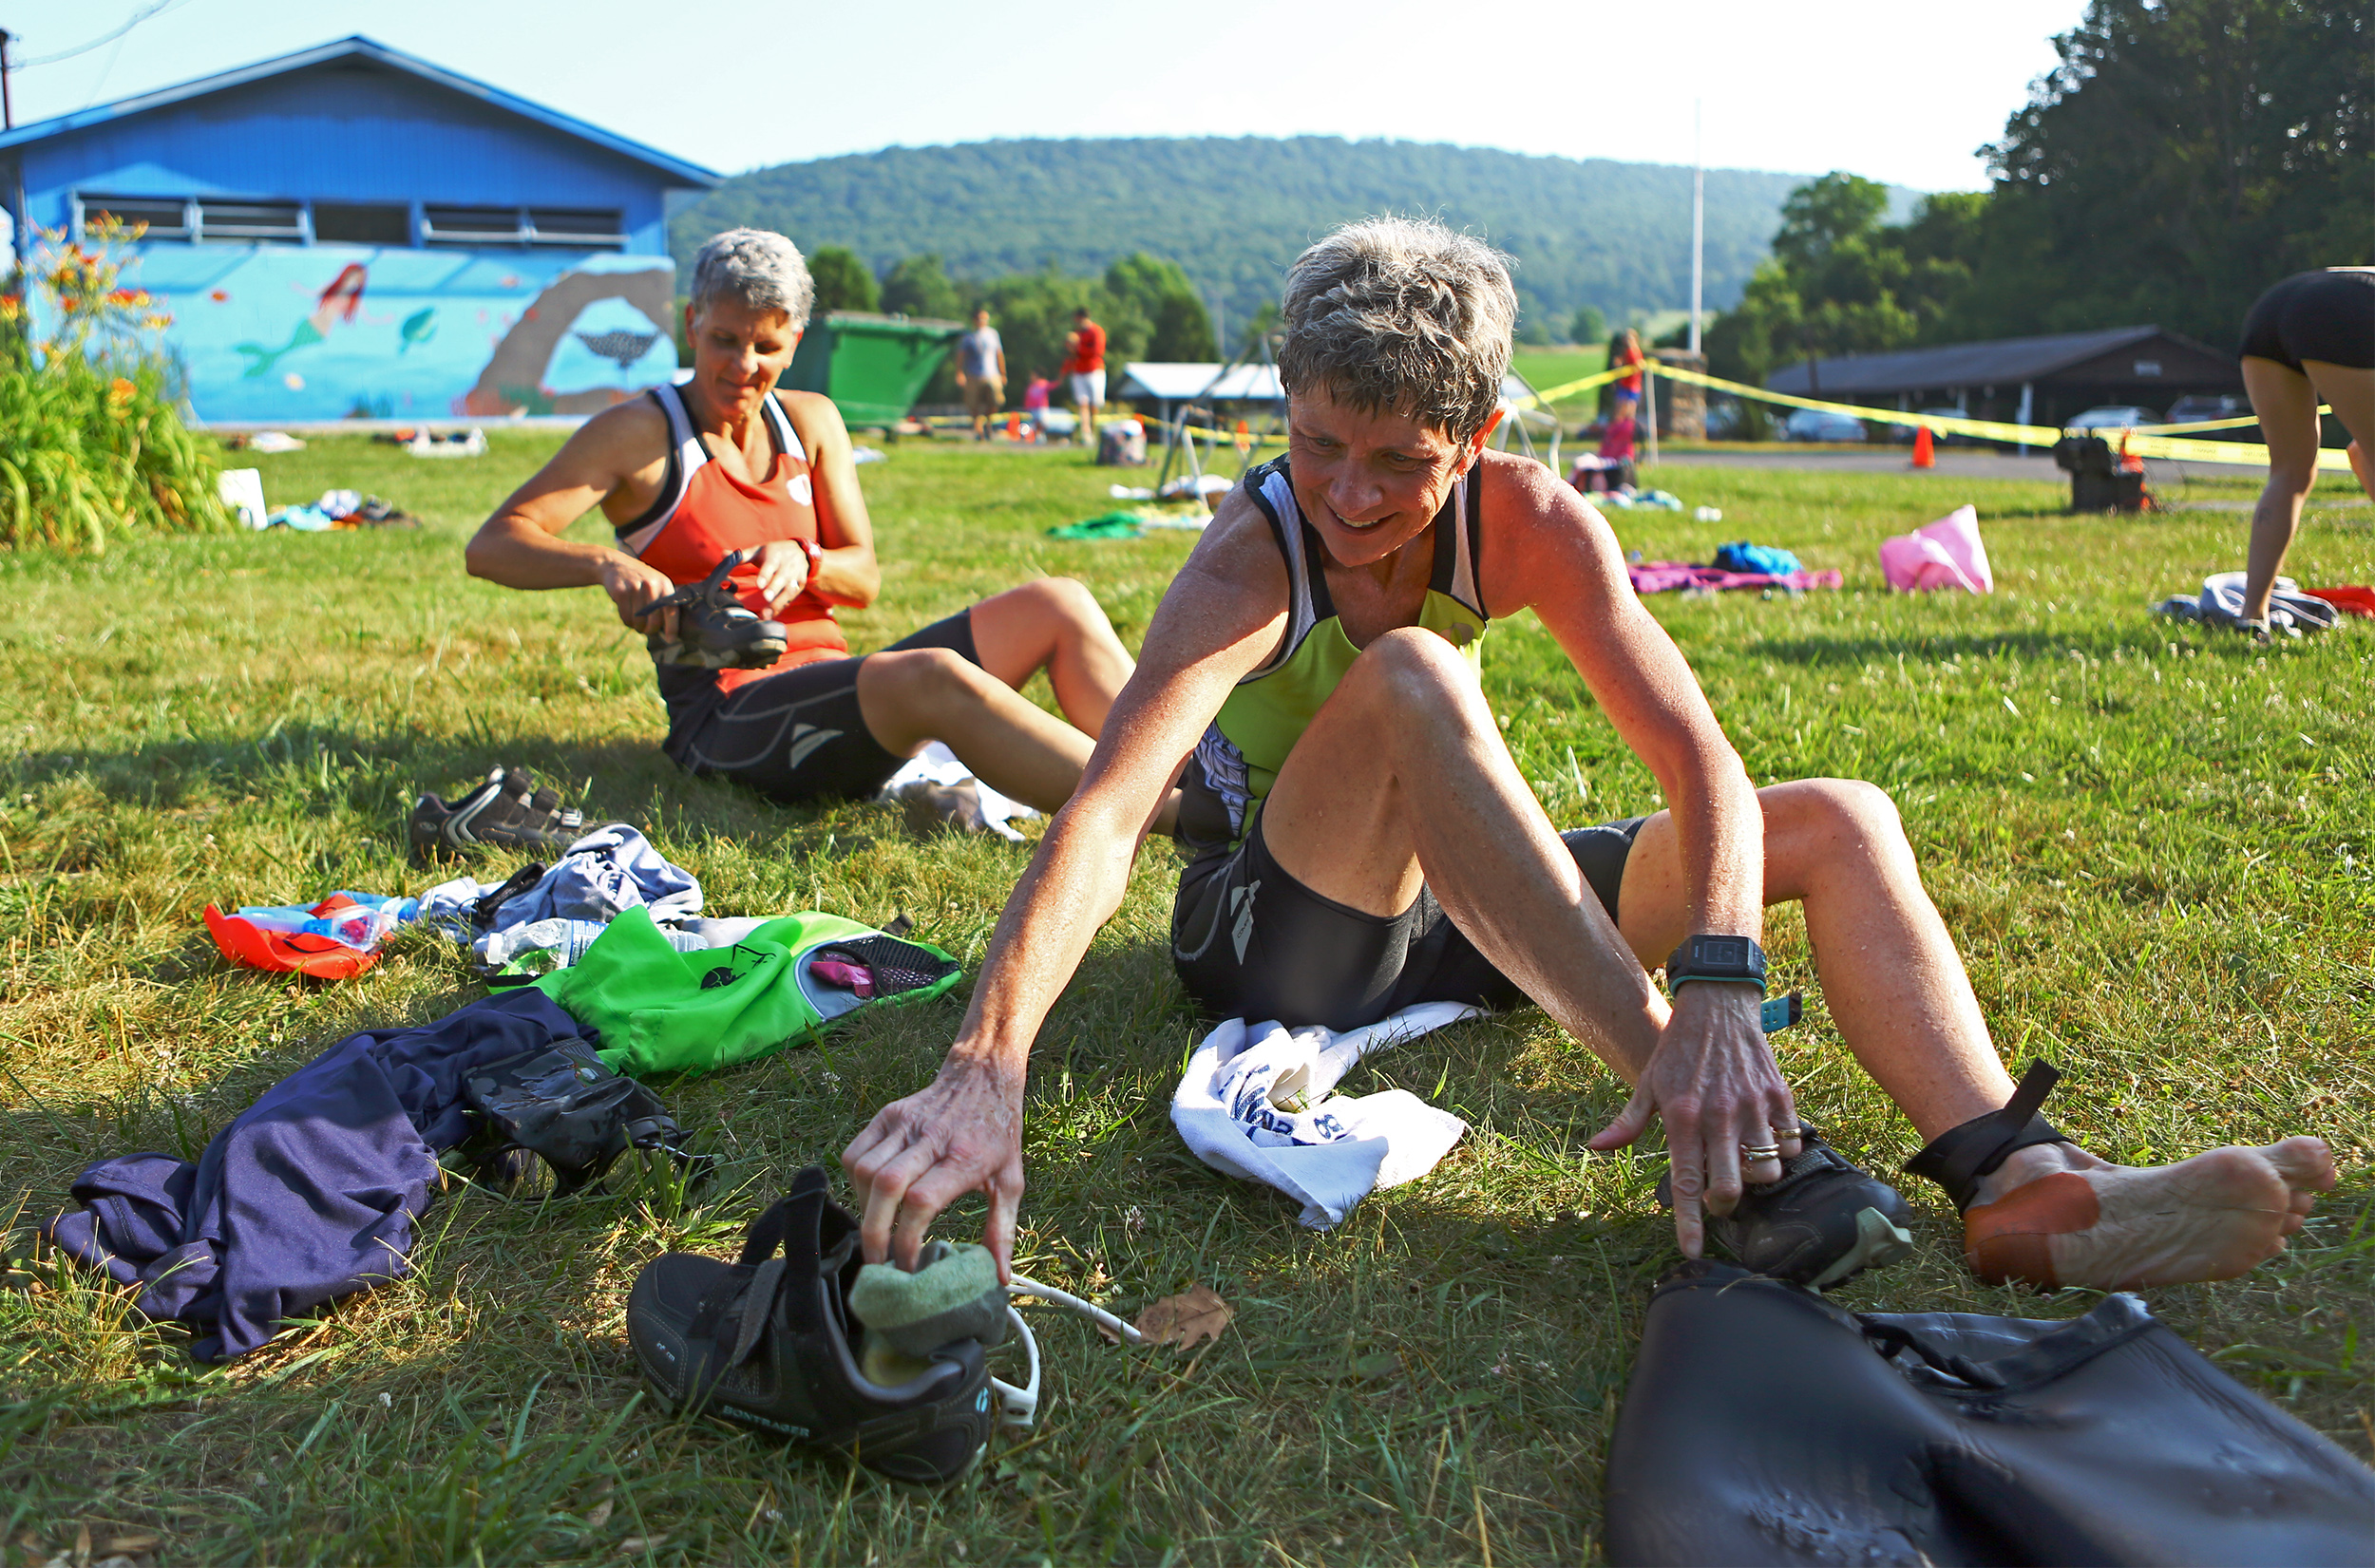 Phillis Sieber,right, and Tammi Christini, left, change into their cycling shoes and equipment during the Millheim Pool Sprint Triathlon outside of the Millheim Pool on Saturday, June 25, 2016.